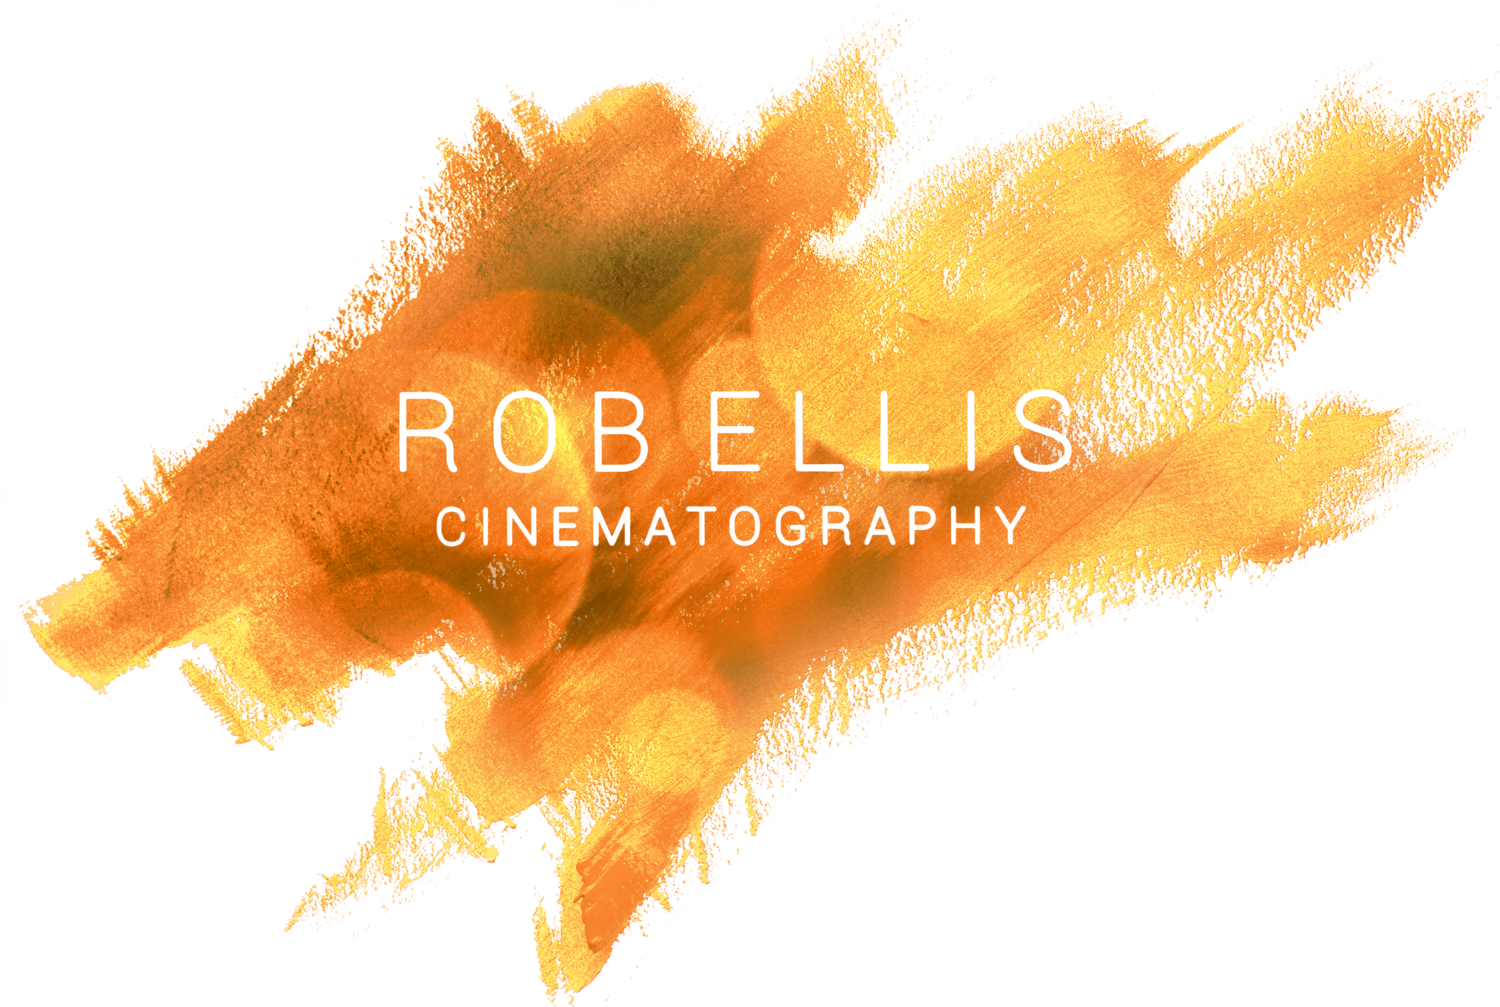 Rob Ellis Cinematography